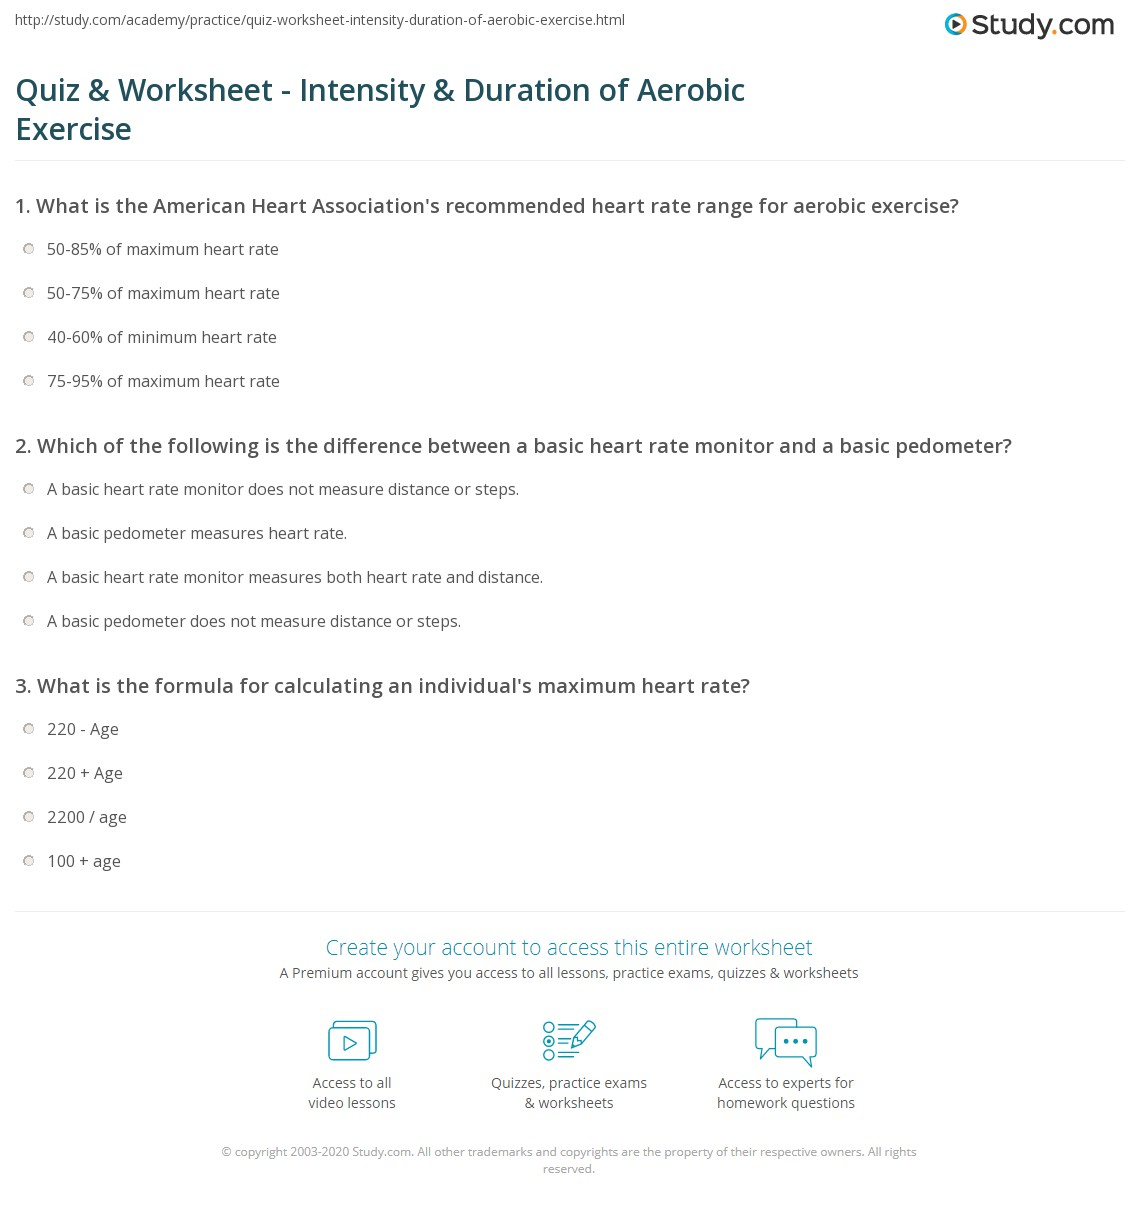 Worksheets Target Heart Rate Worksheet target heart rate worksheets for students llamadirectory com collection of worksheet sharebrowse